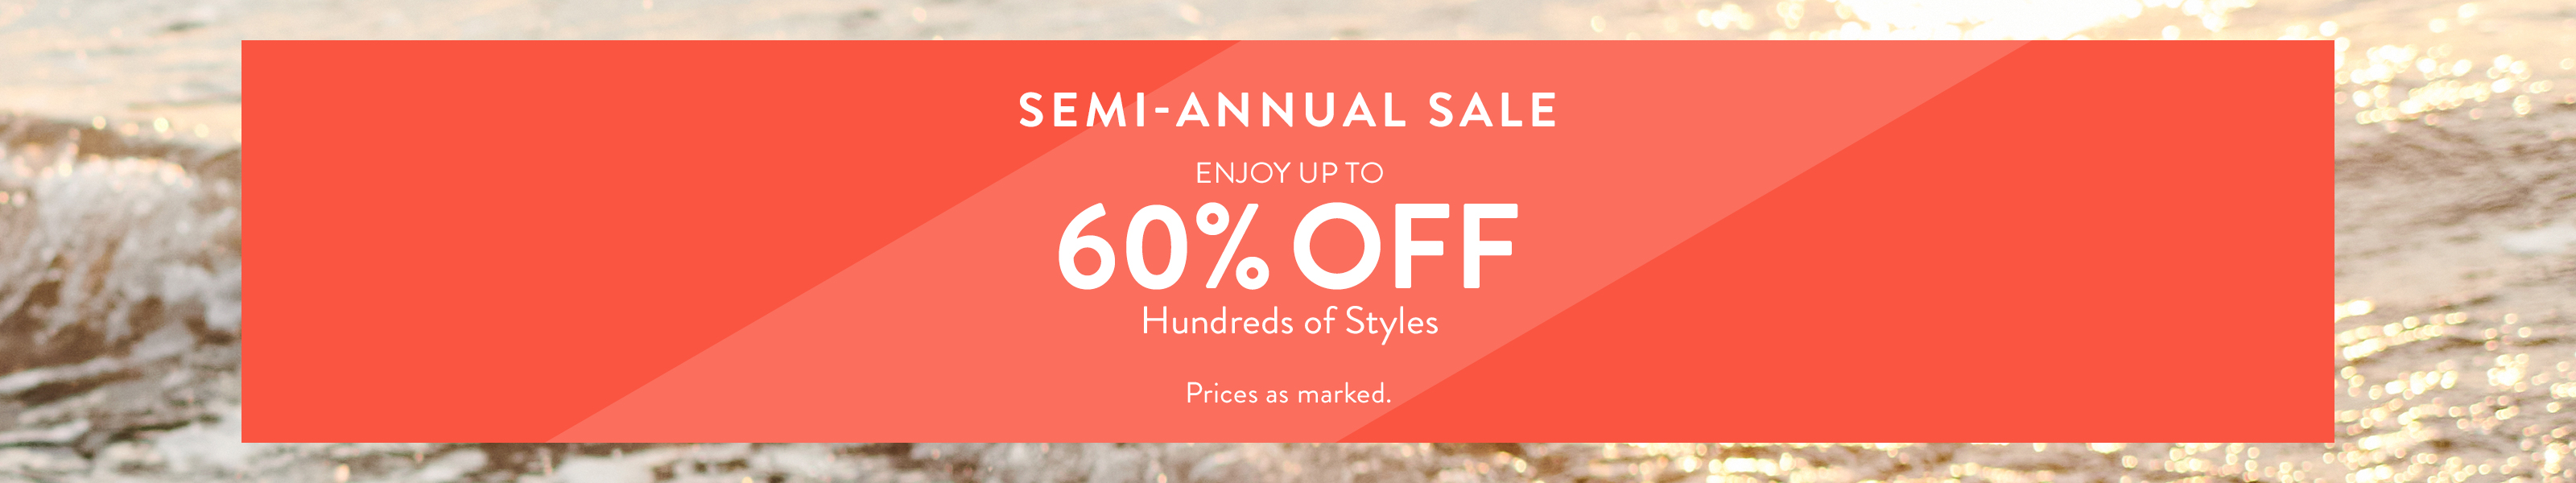 Sperry Semi-Annual Sale. Up to 60% off